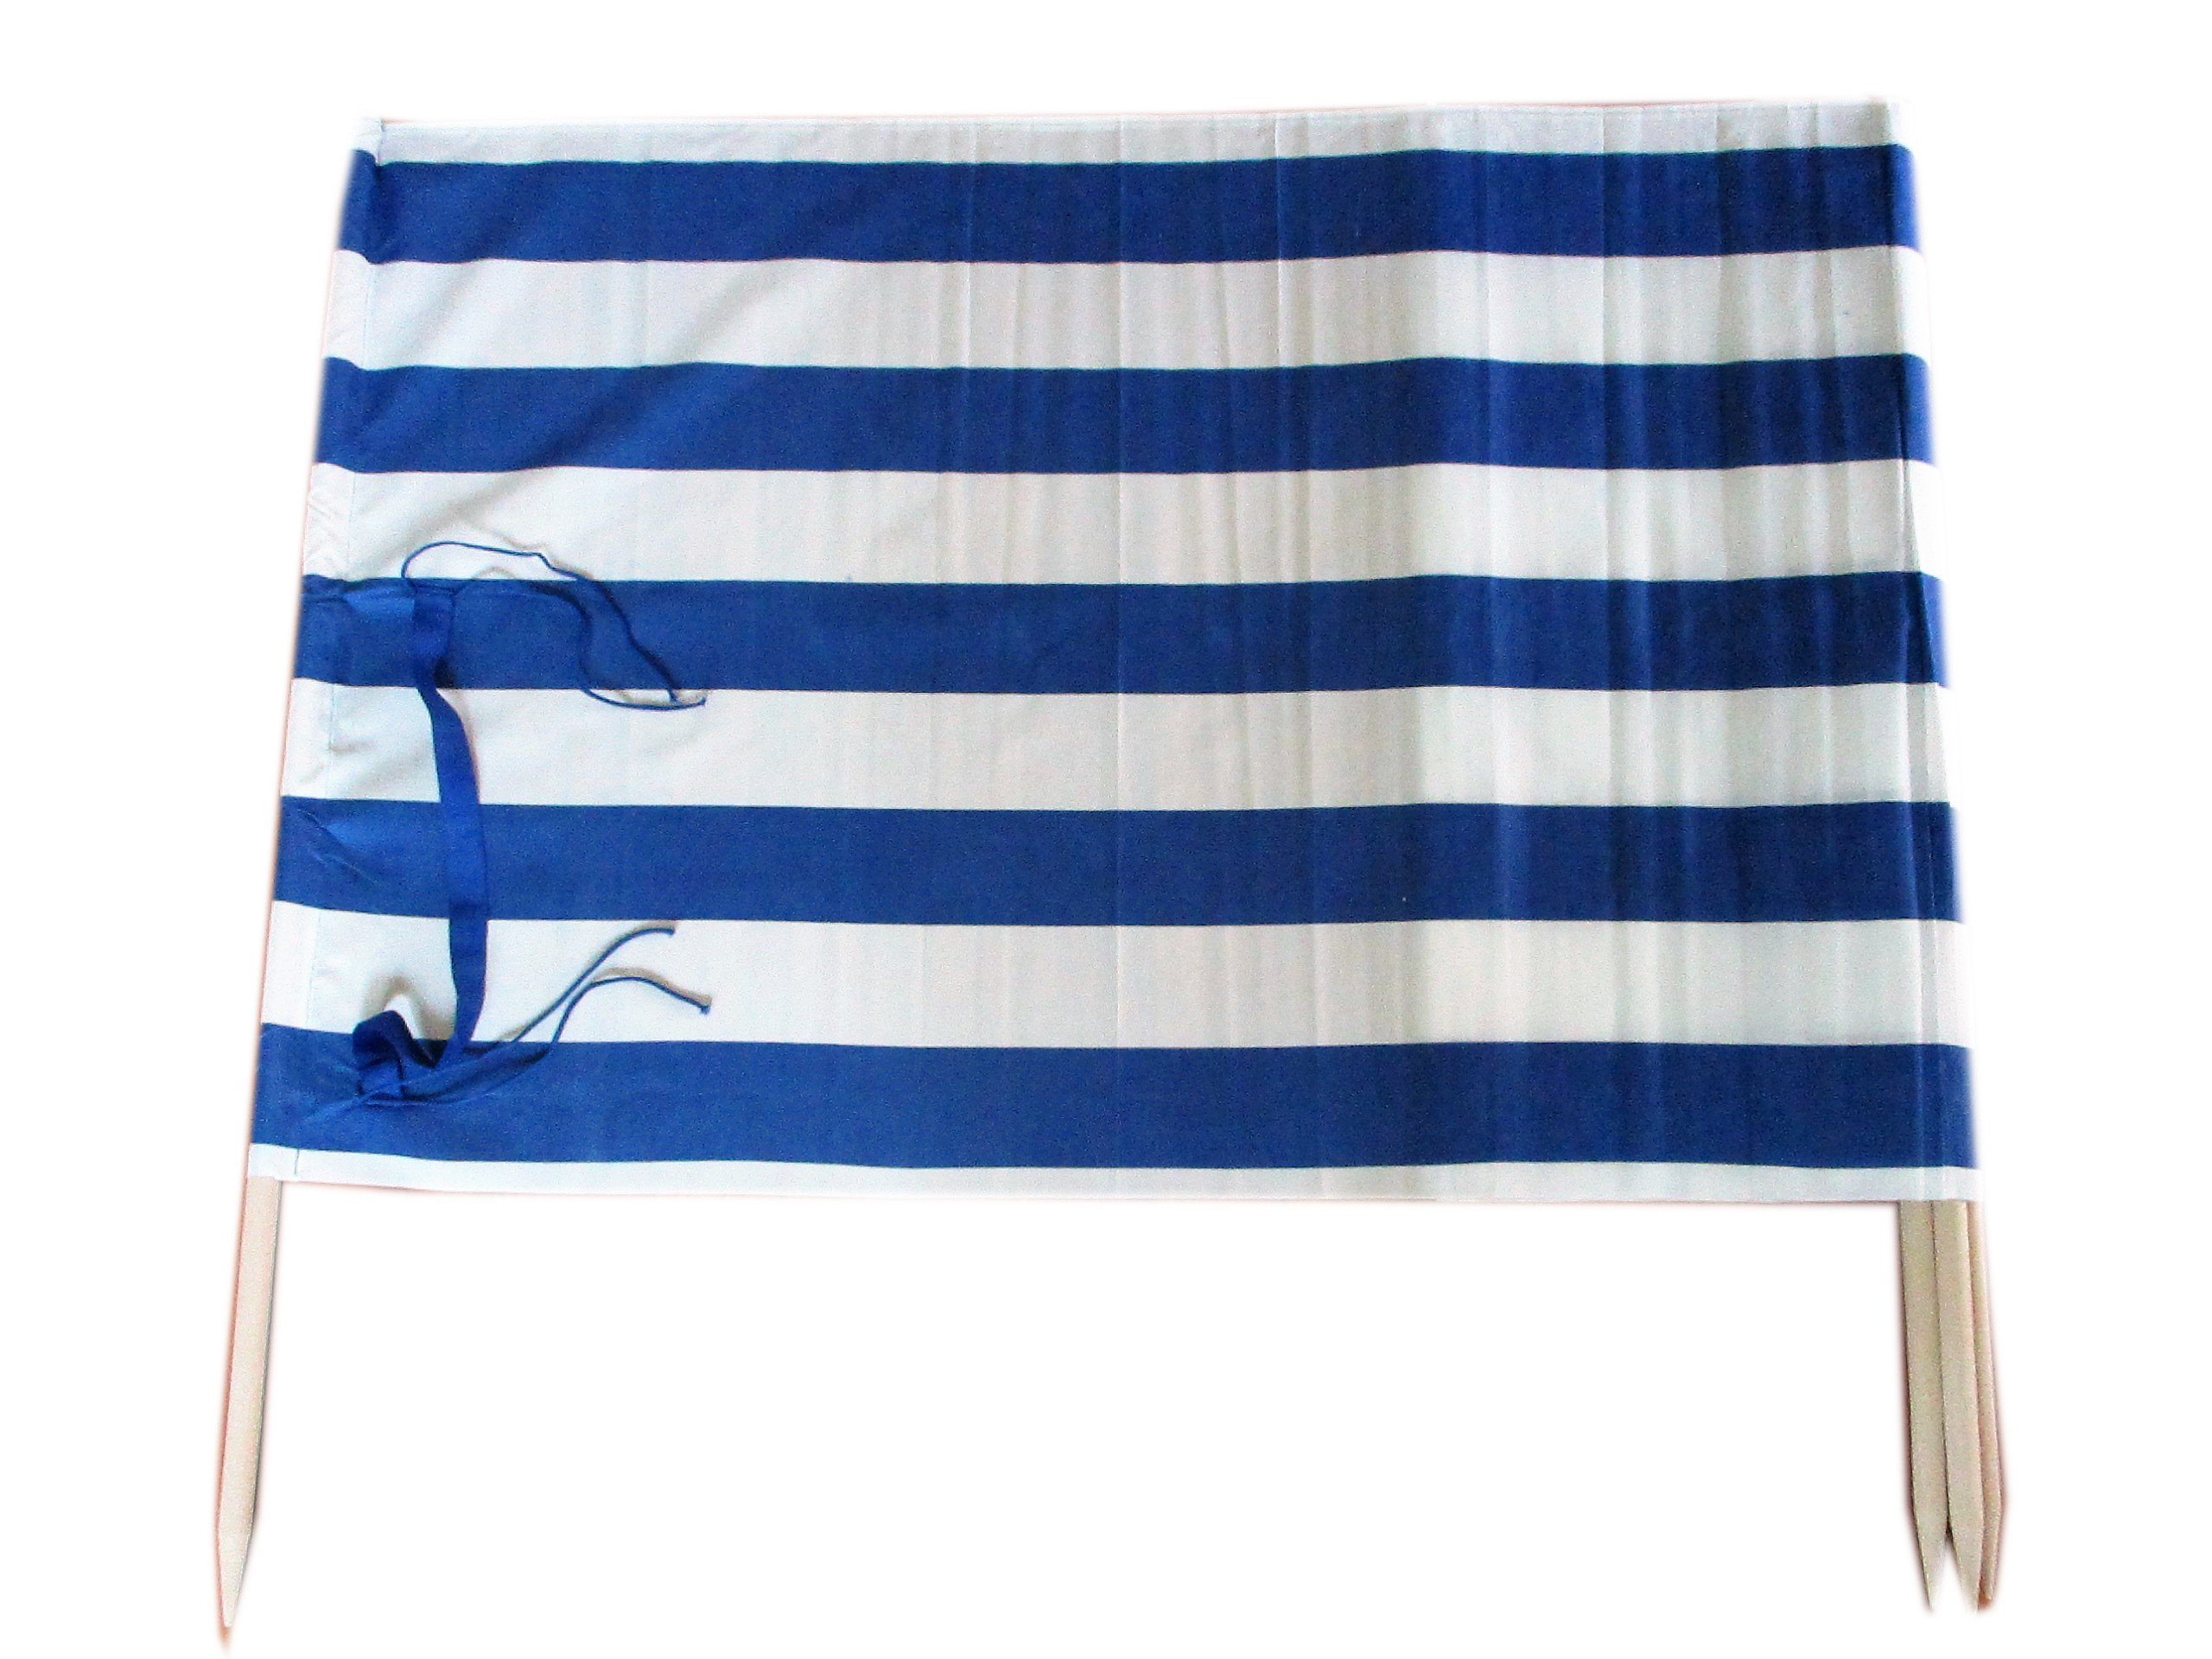 13 ft Beach Windscreen Privacy Windbreak with a Bag Made in Europe (Blue/White Stripes) by Frost Hats